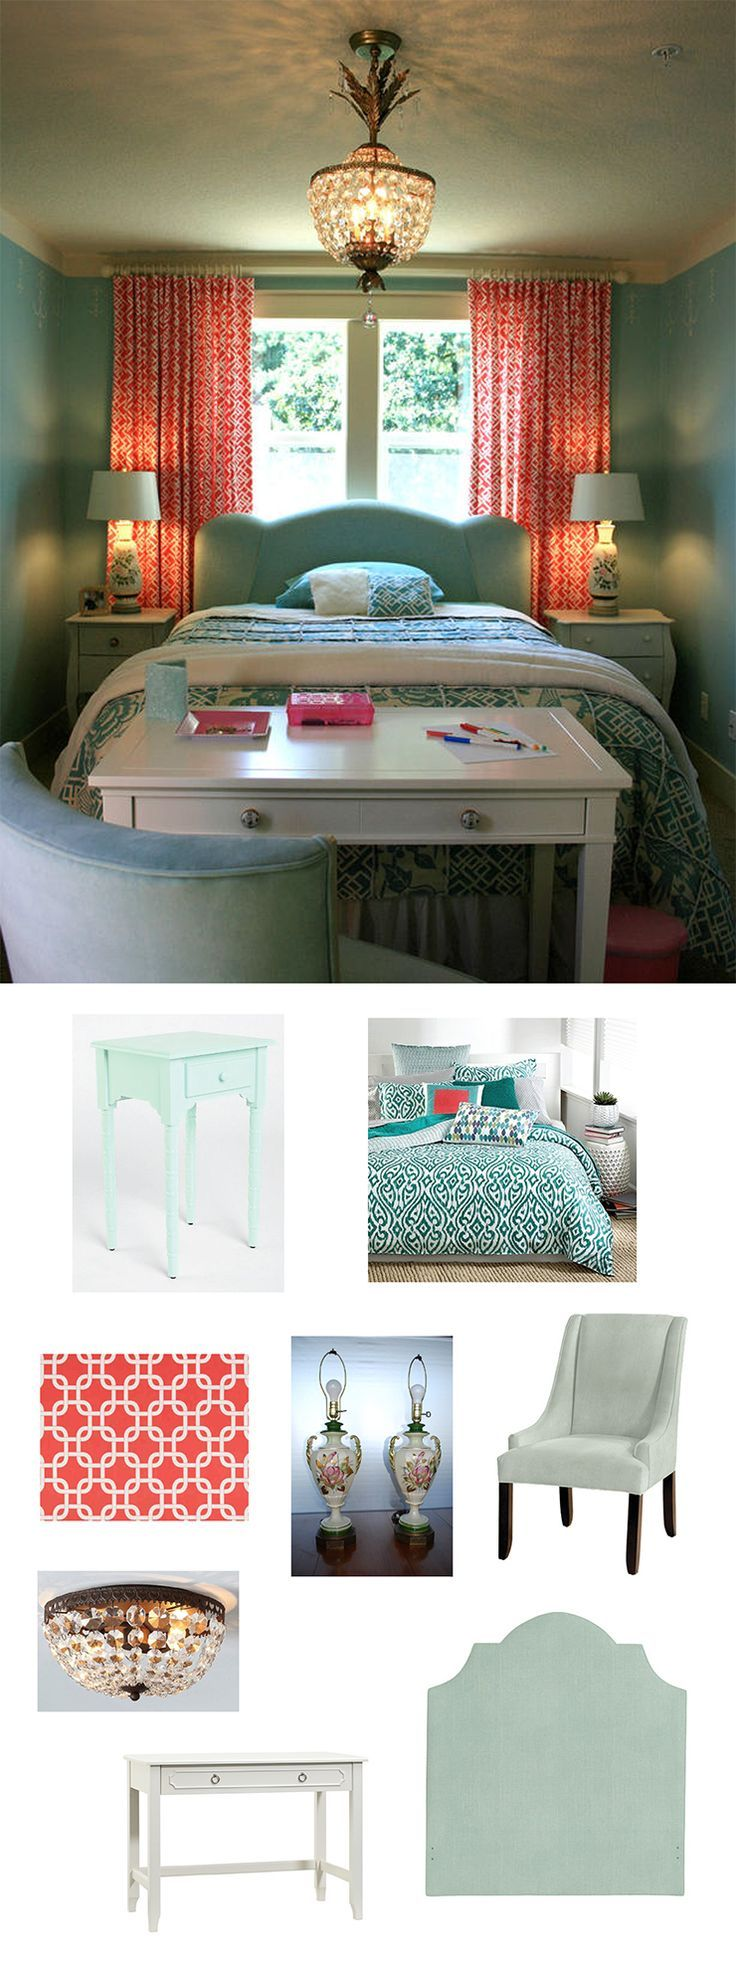 Space Saving Tips Kids In A Small Bedroom